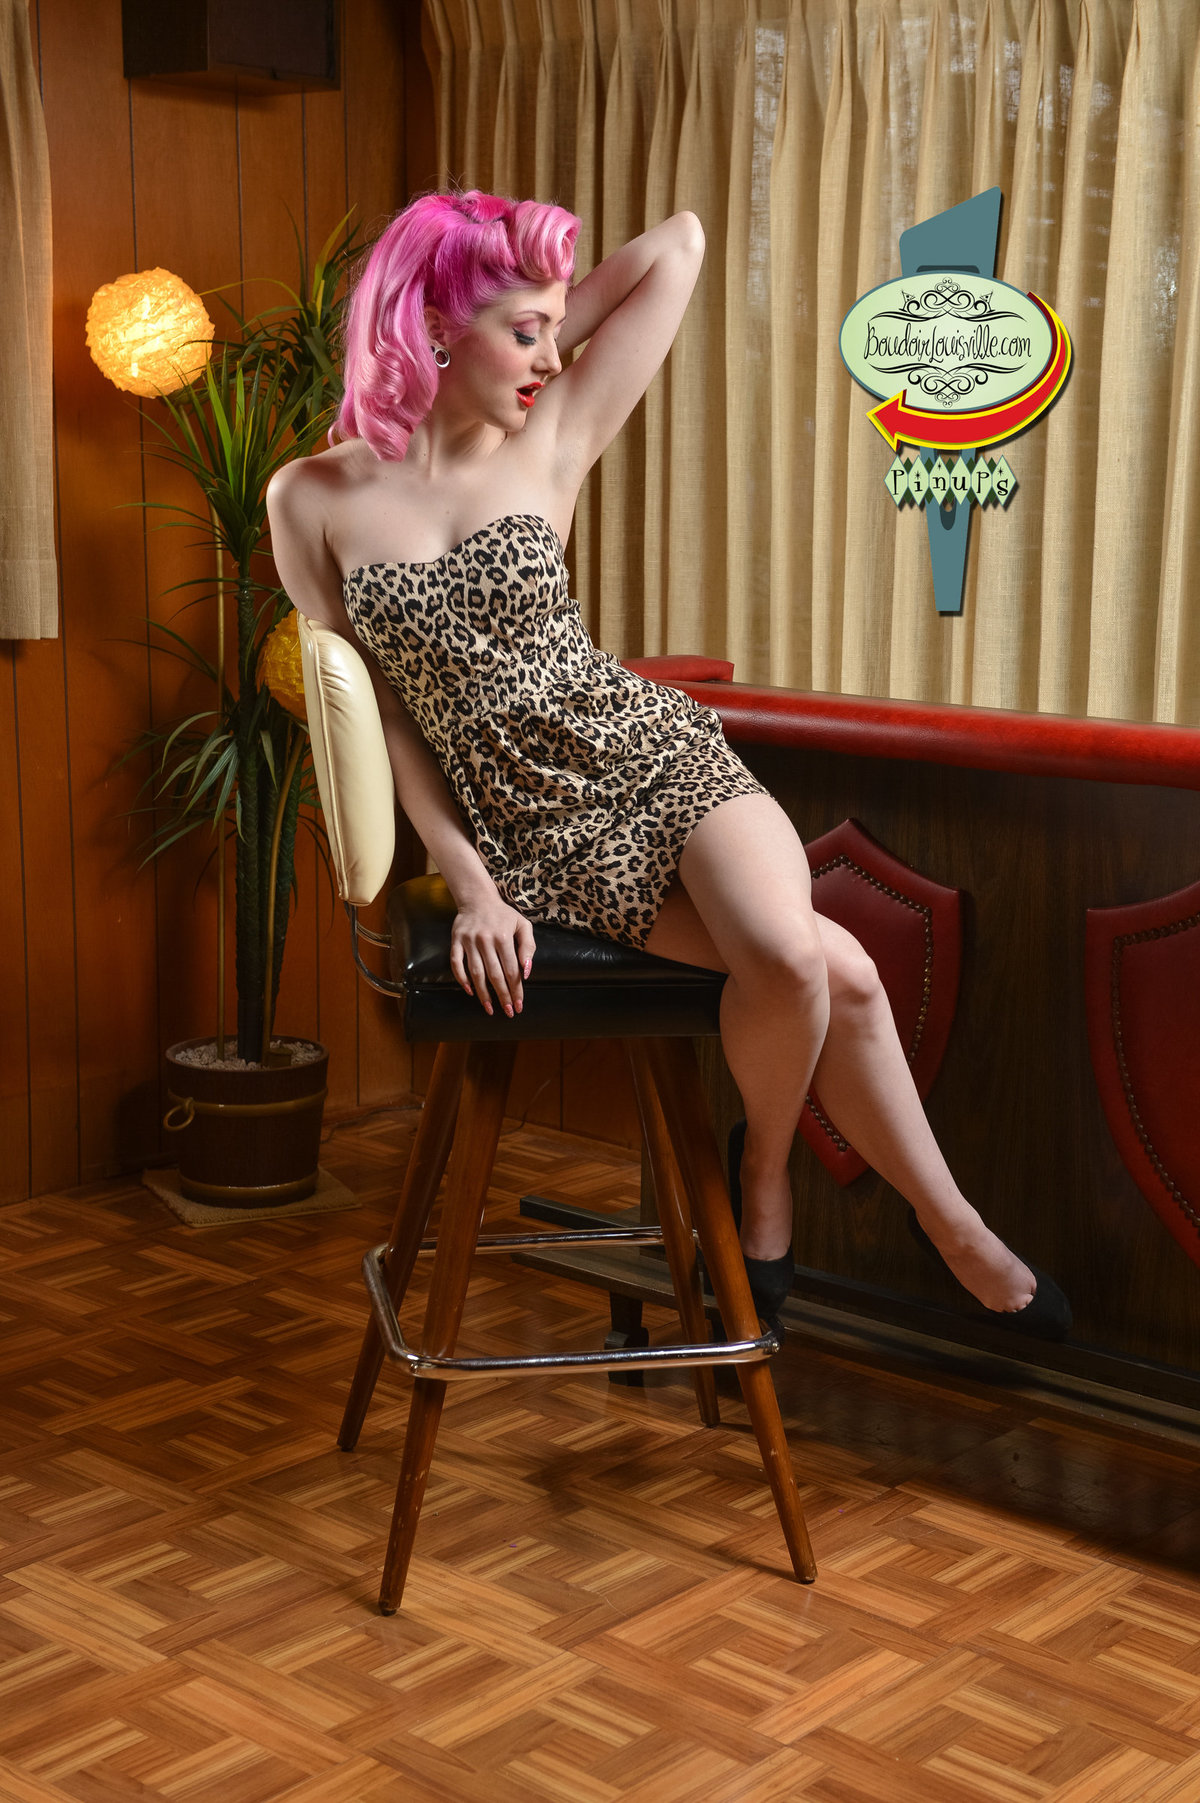 Boudoir Louisville - Pinup Girl Photography Studio - Pinup Photographers-149